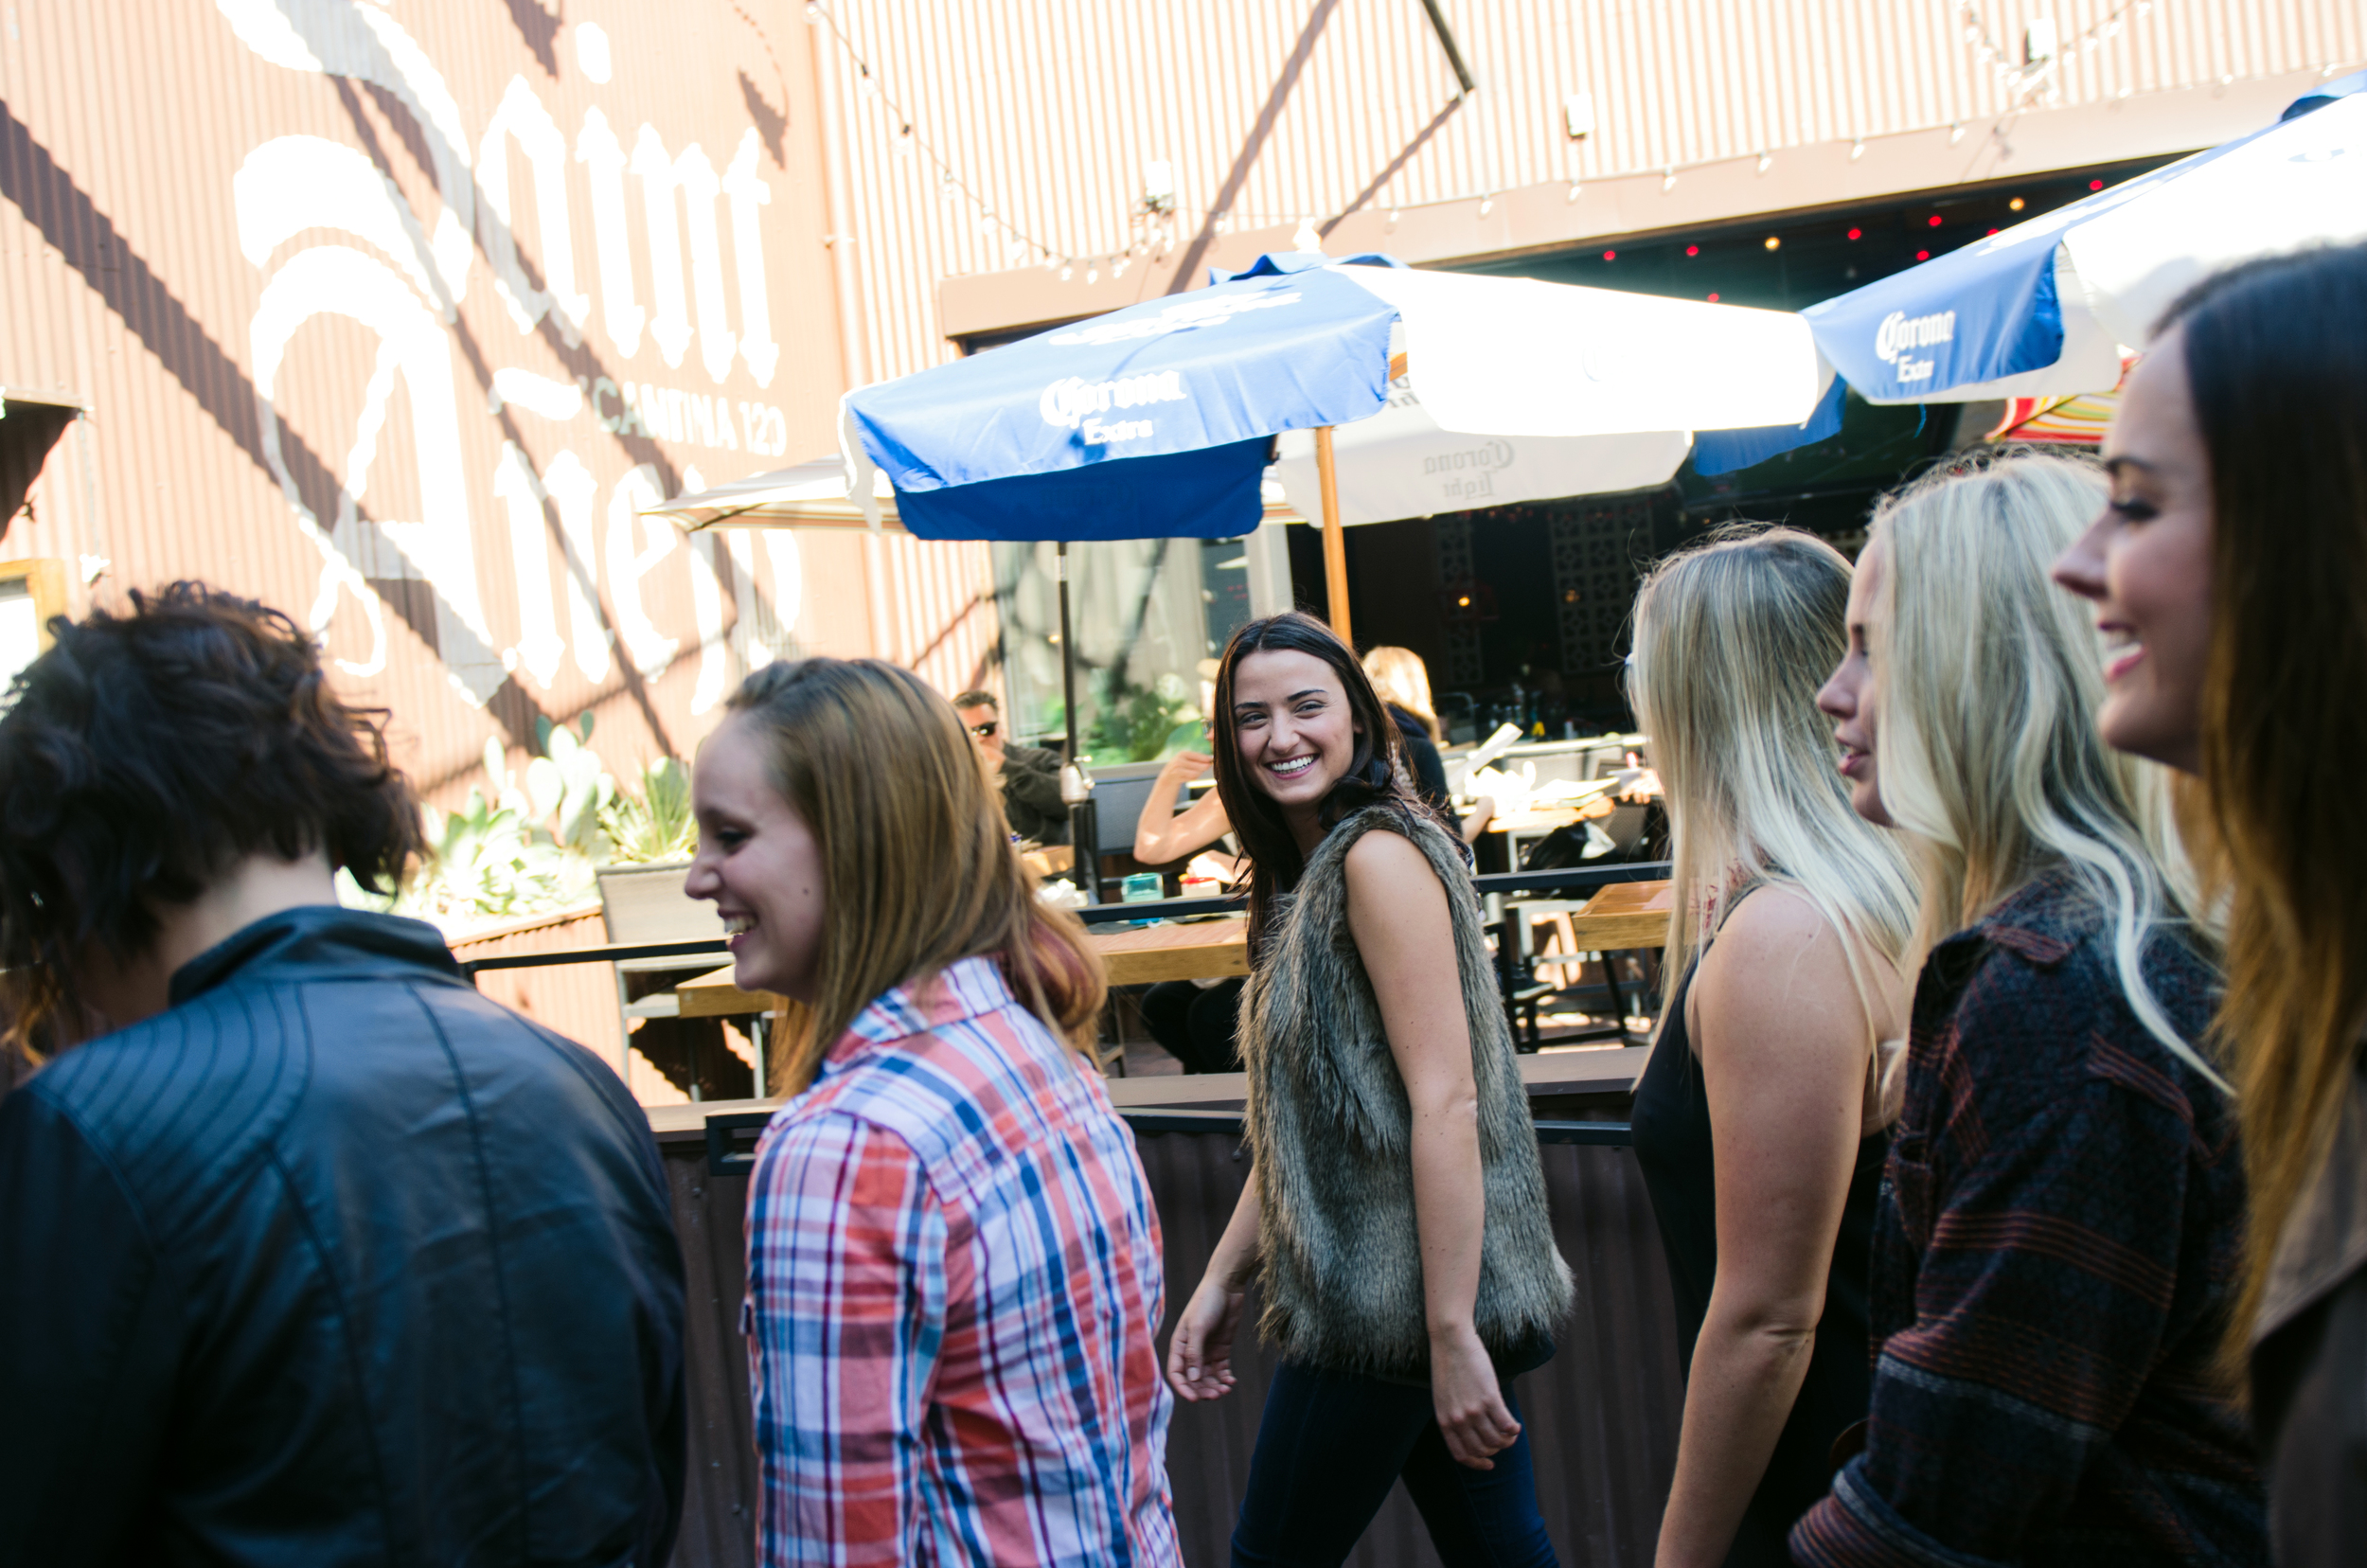 Brunch is all about friends, laughter, and great food and drinks!